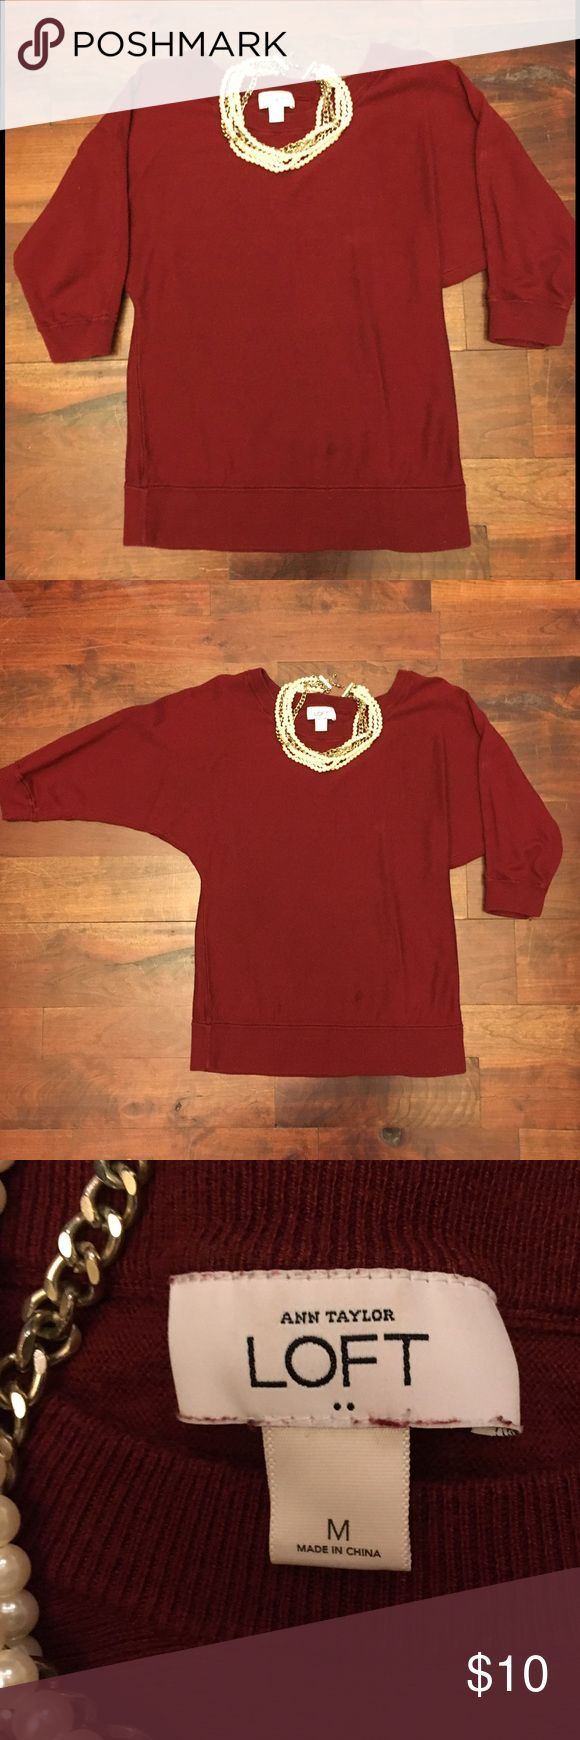 Anne Taylor Loft Sweater Cute and comfy red Loft sweater. LOFT Sweaters Crew & Scoop Necks